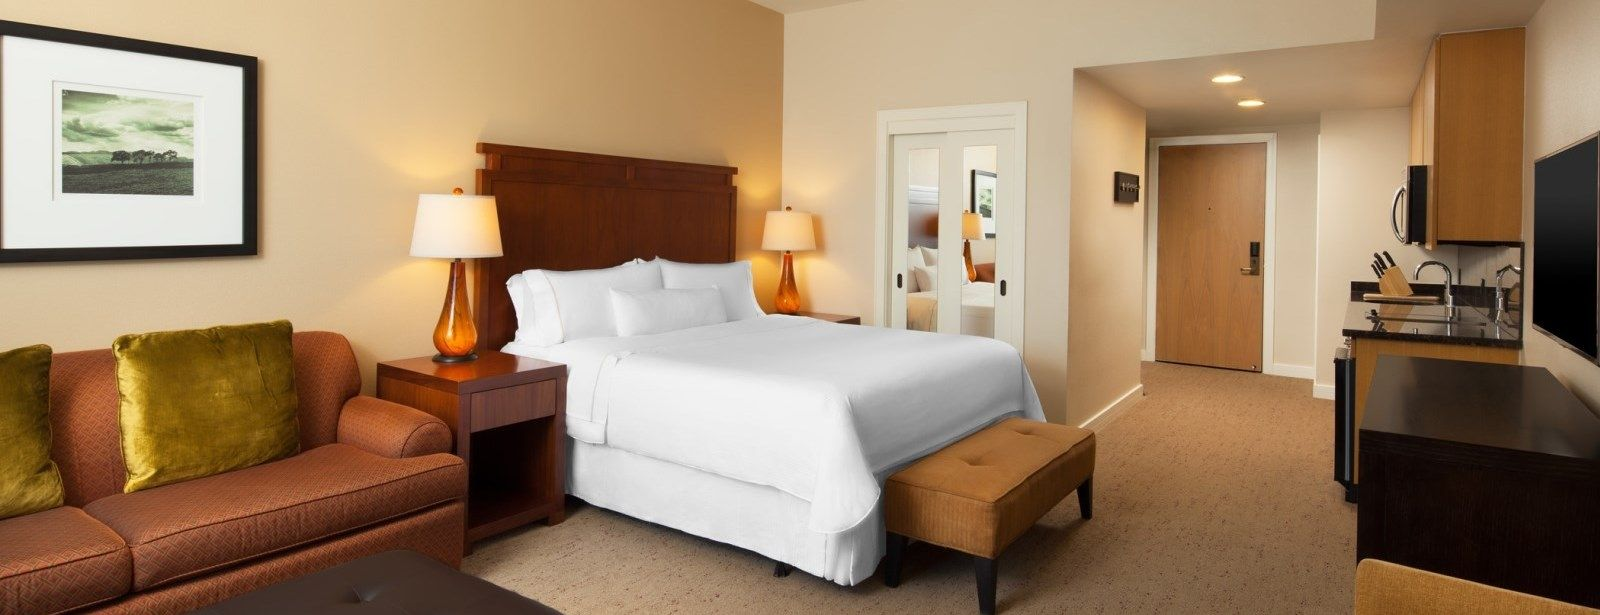 The Westin Verasa Napa Hotel - Deluxe King Rooms